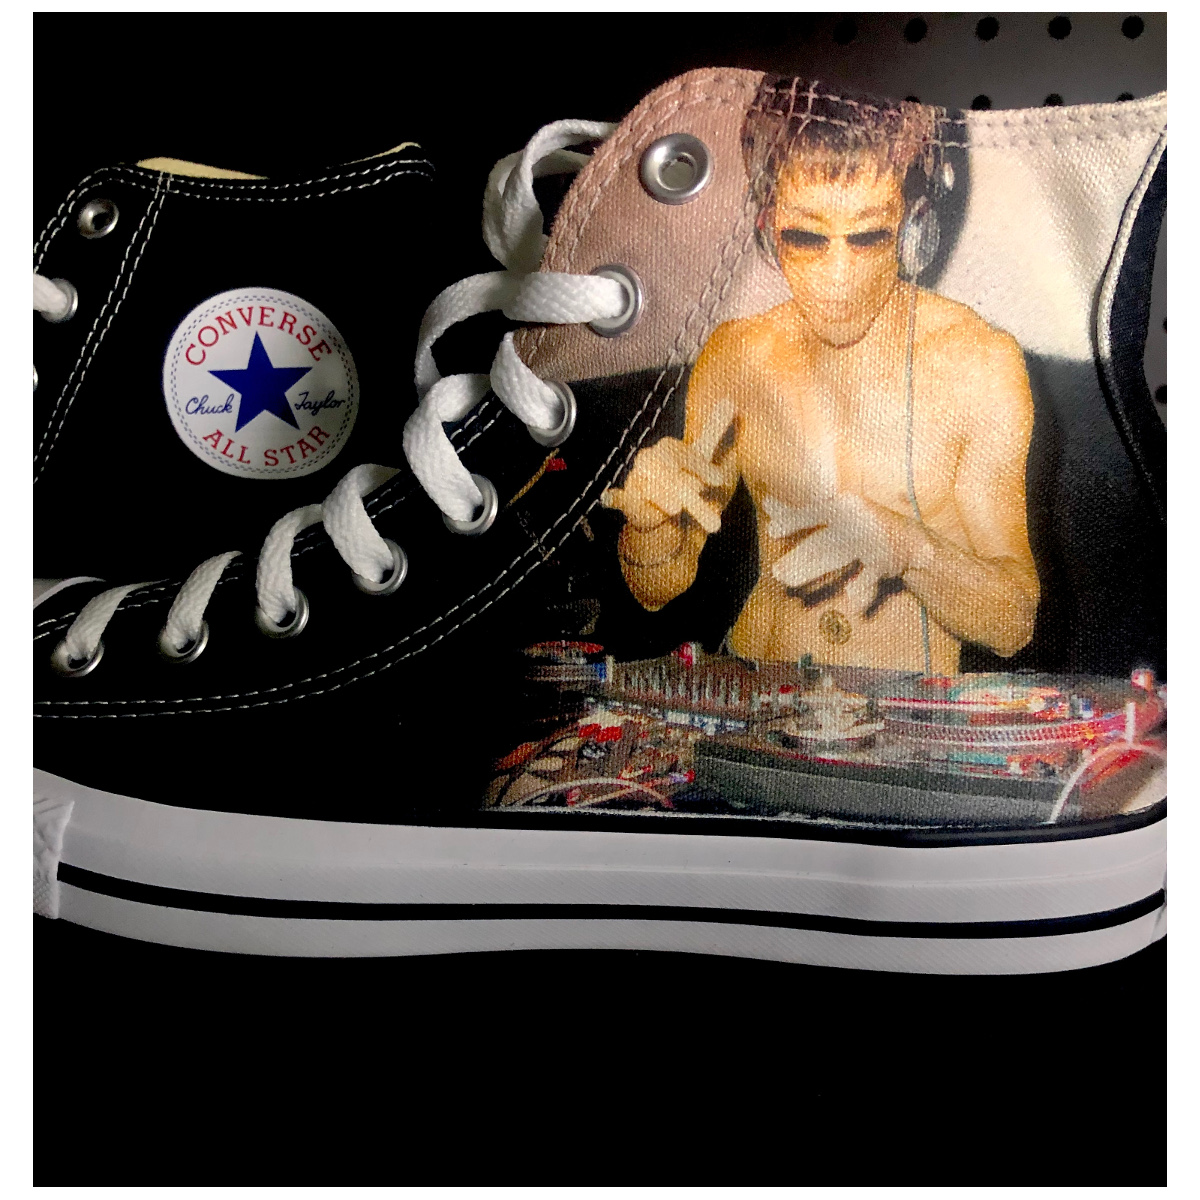 DJ Dragon Converse All-Star High Top